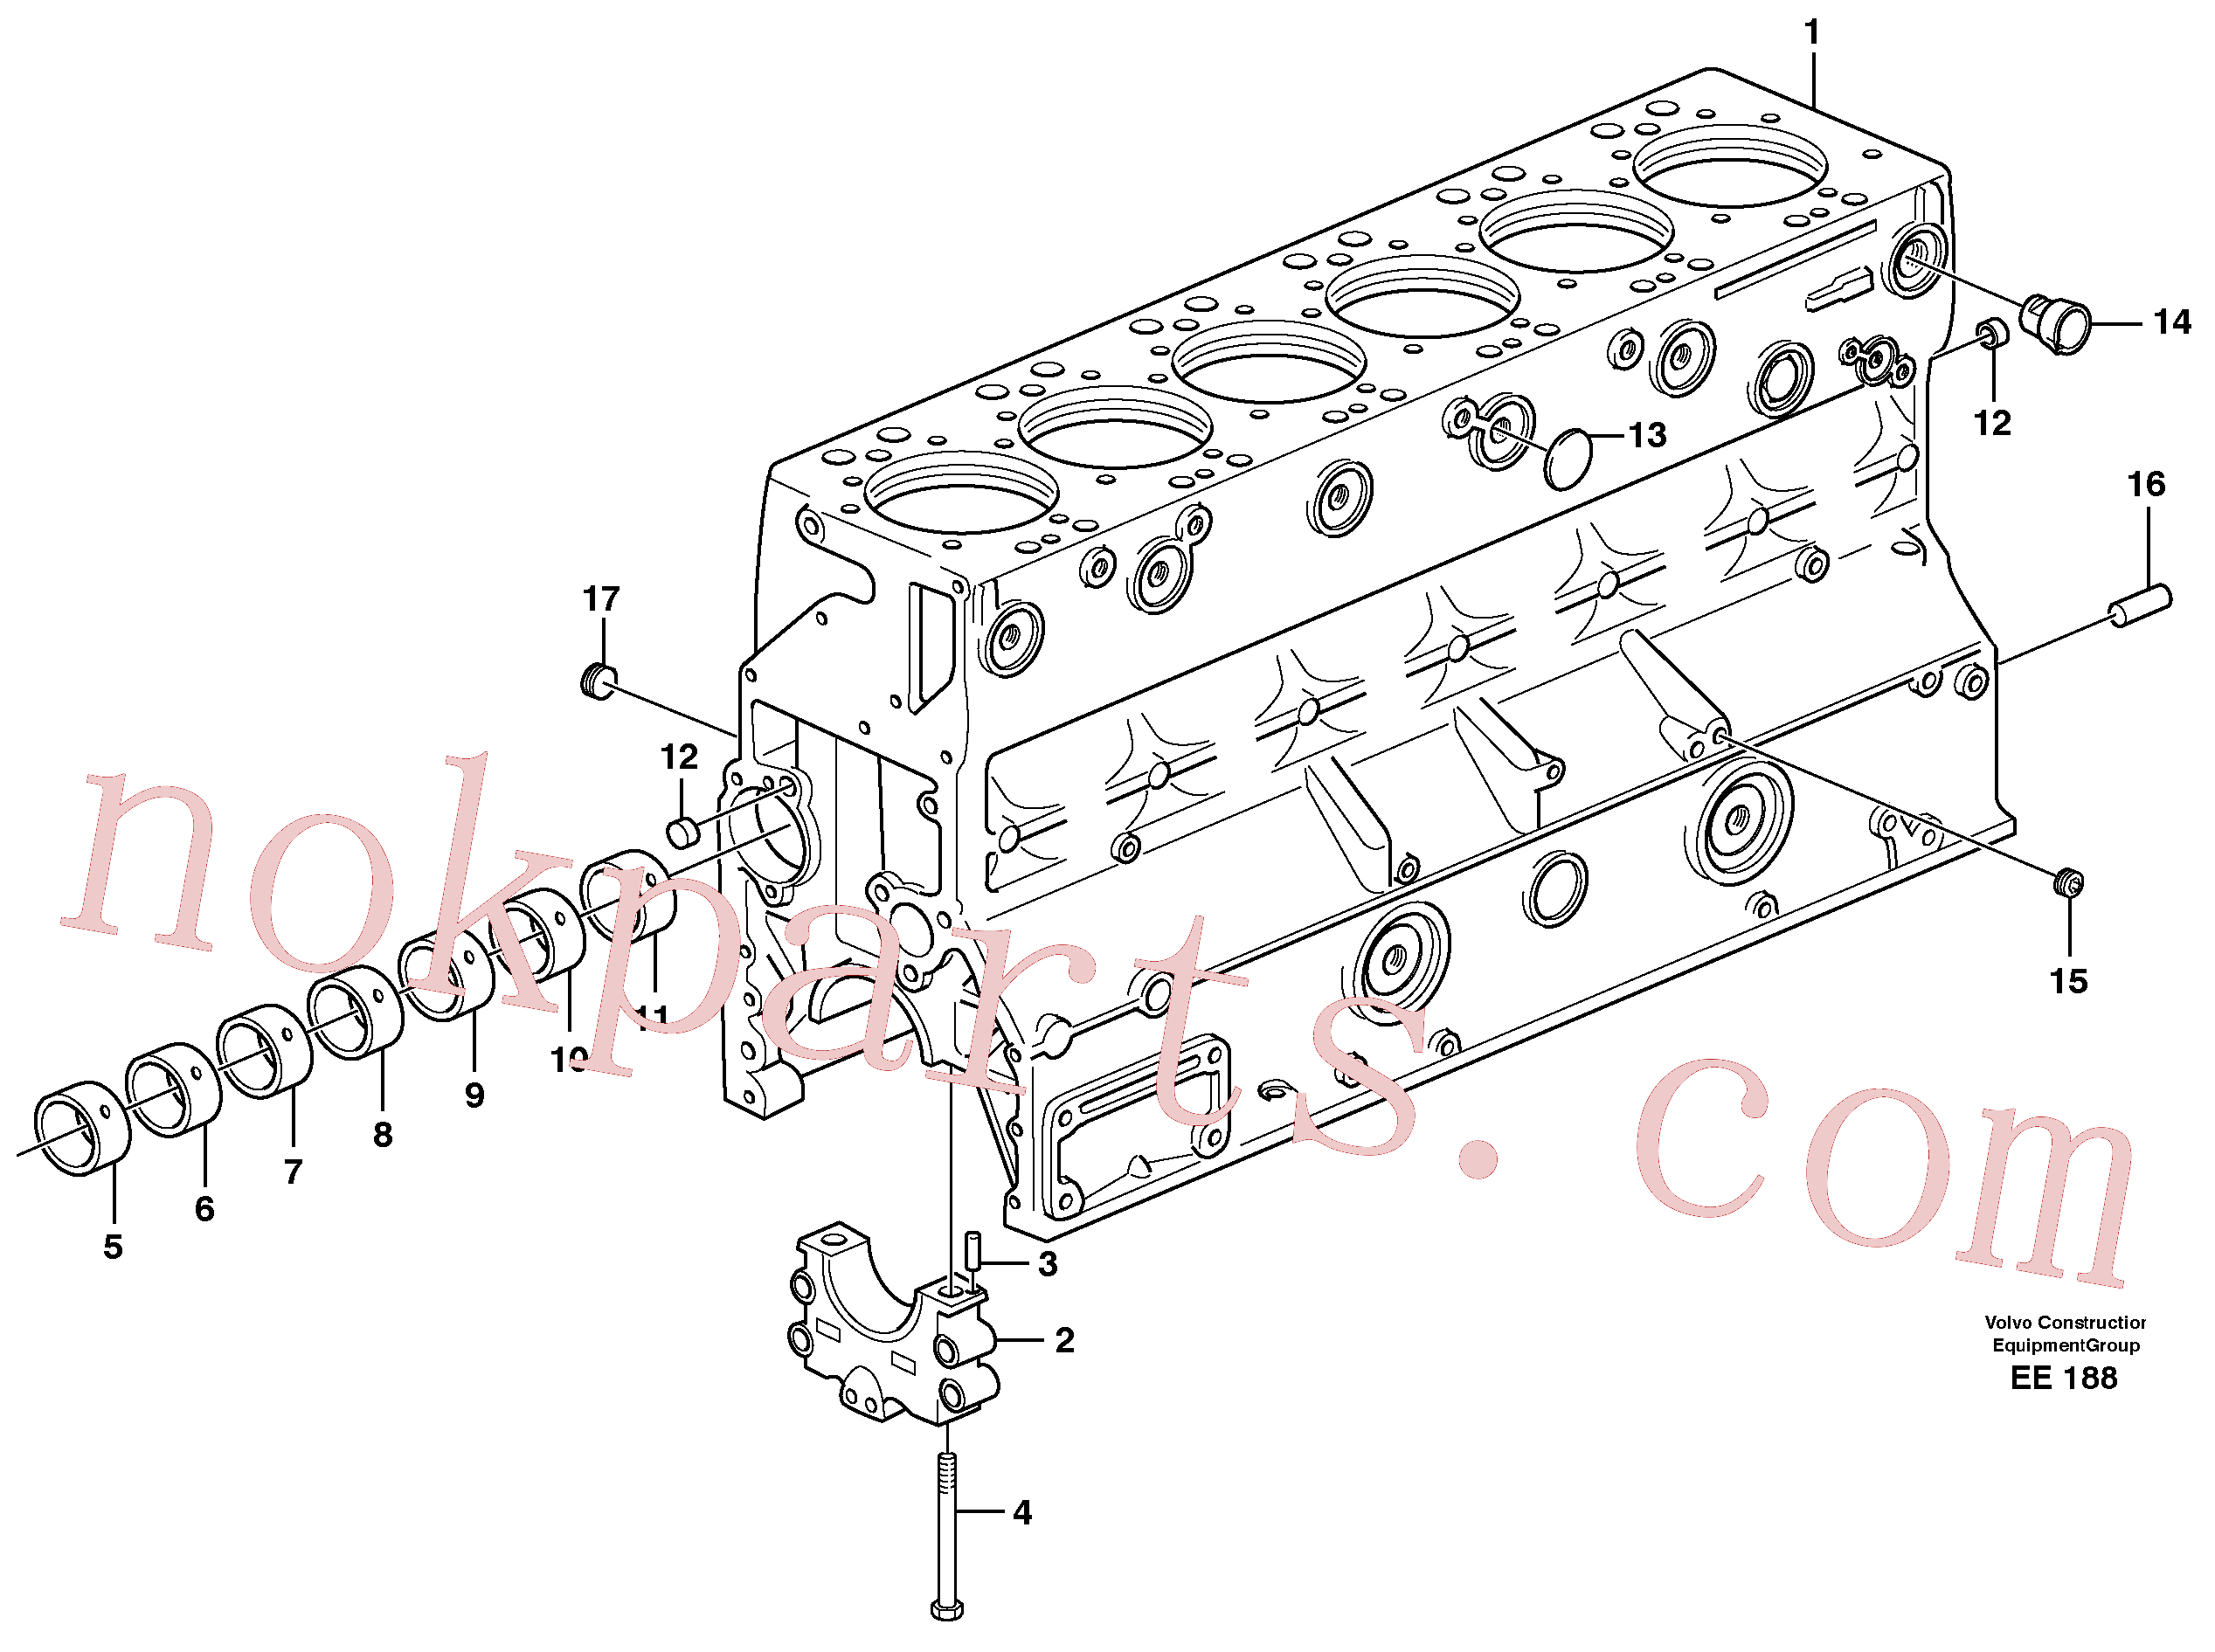 VOE191171 for Volvo Cylinder block(EE188 assembly)